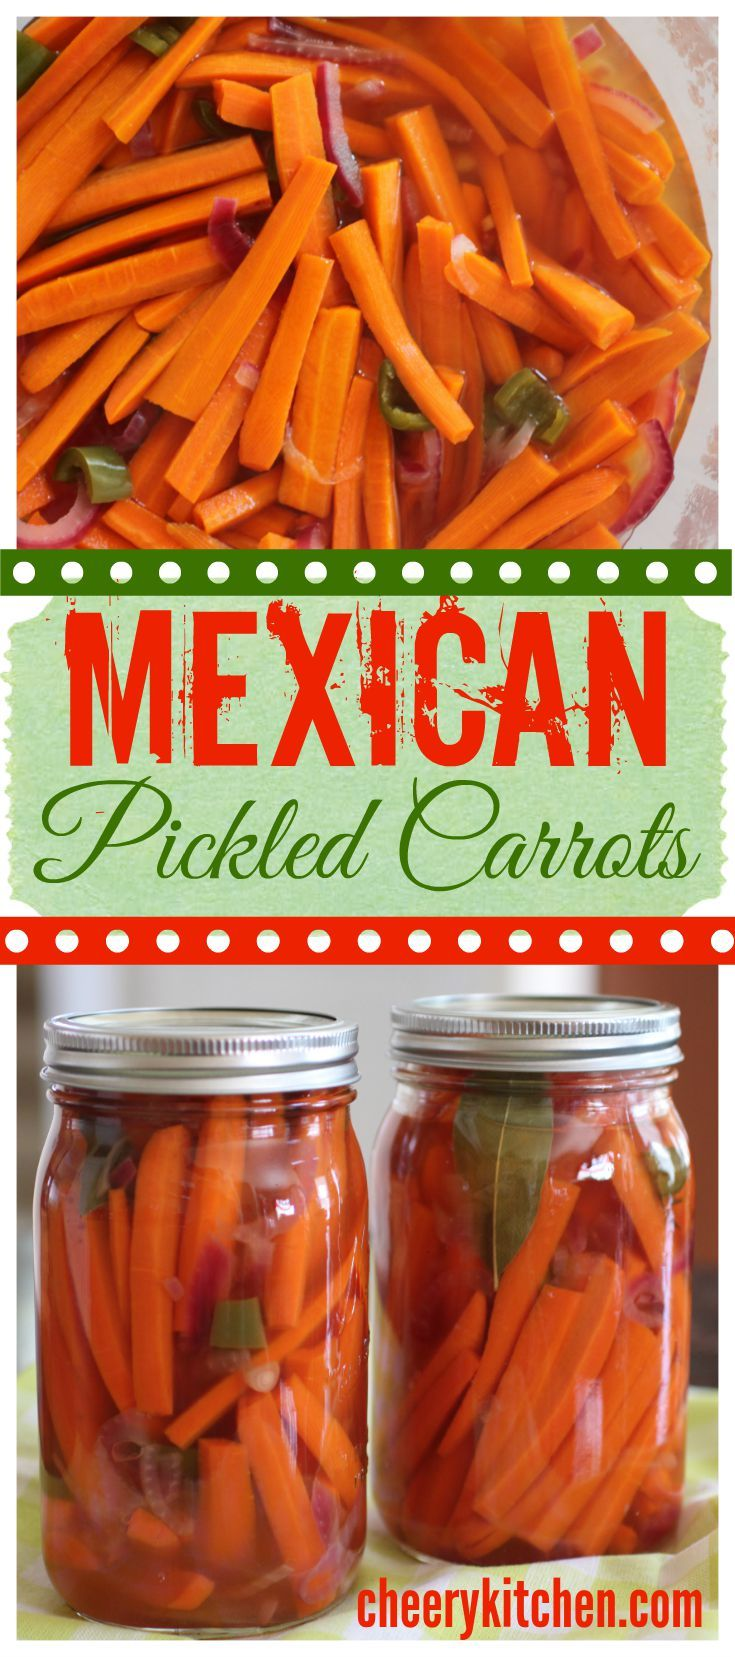 Mexican Pickled Carrots, a perfect no-fat snack.  Make 'em up quick and keep them in the fridge.  Great for Taco Tuesdays too!